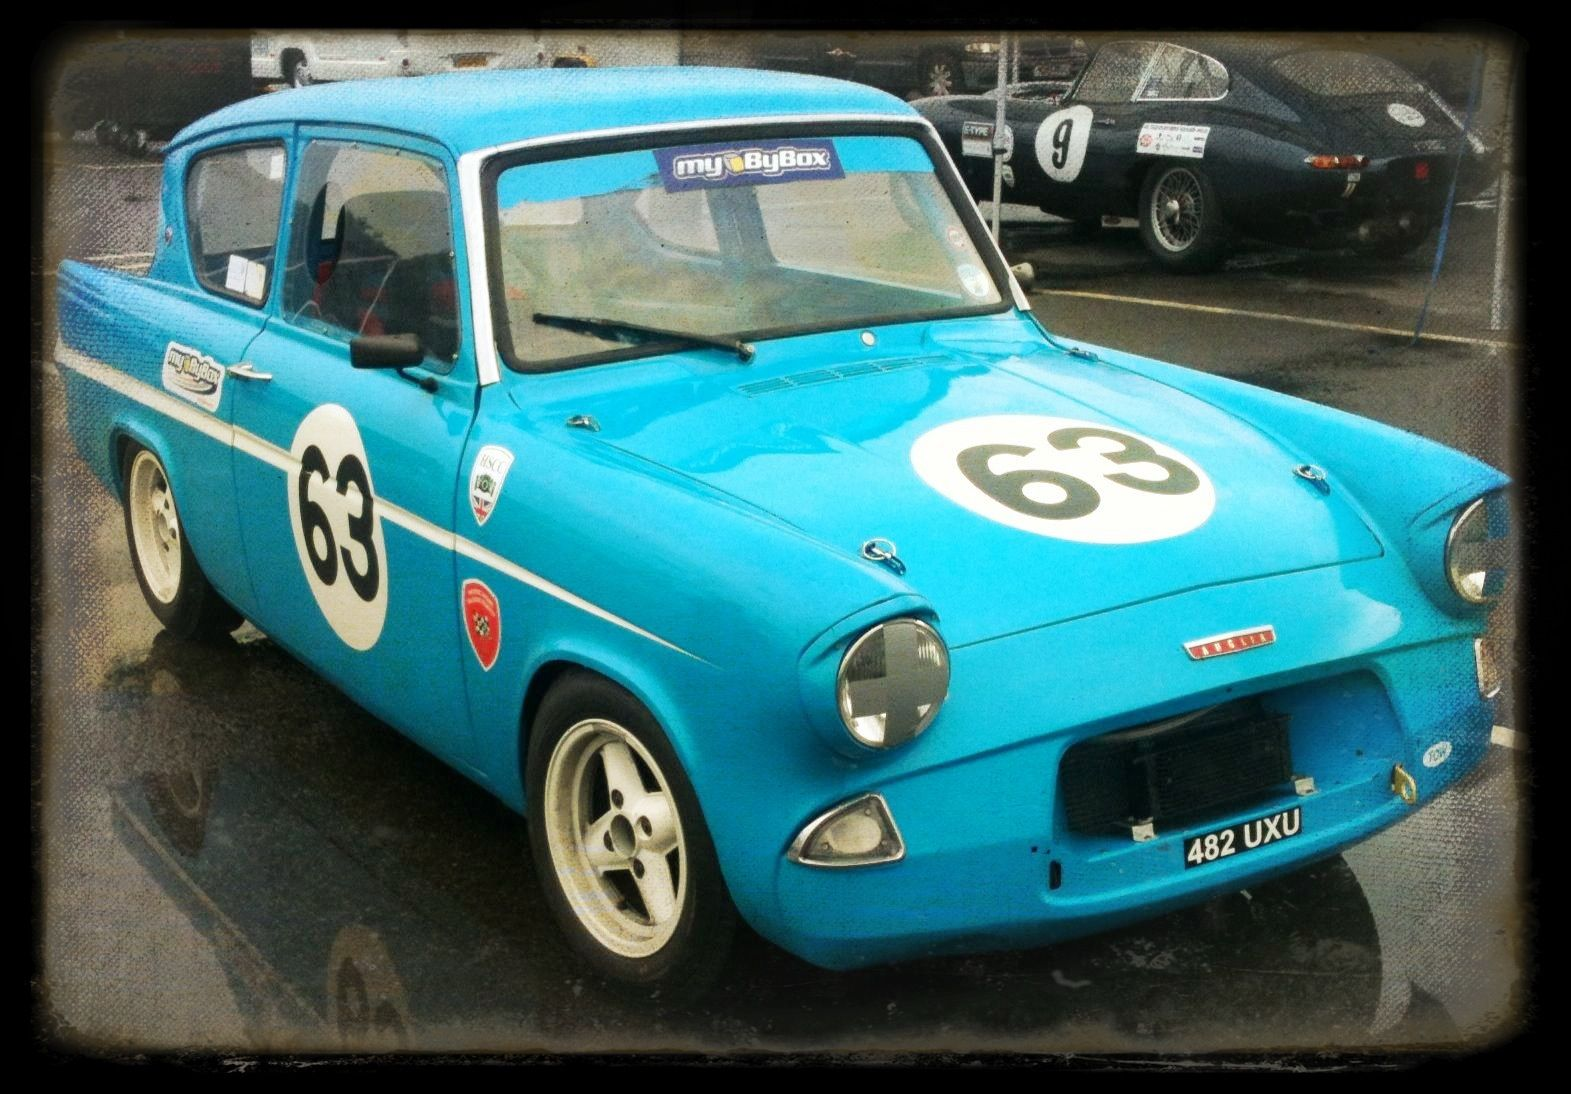 Ford Anglia Oulton Park With Images British Cars Ford